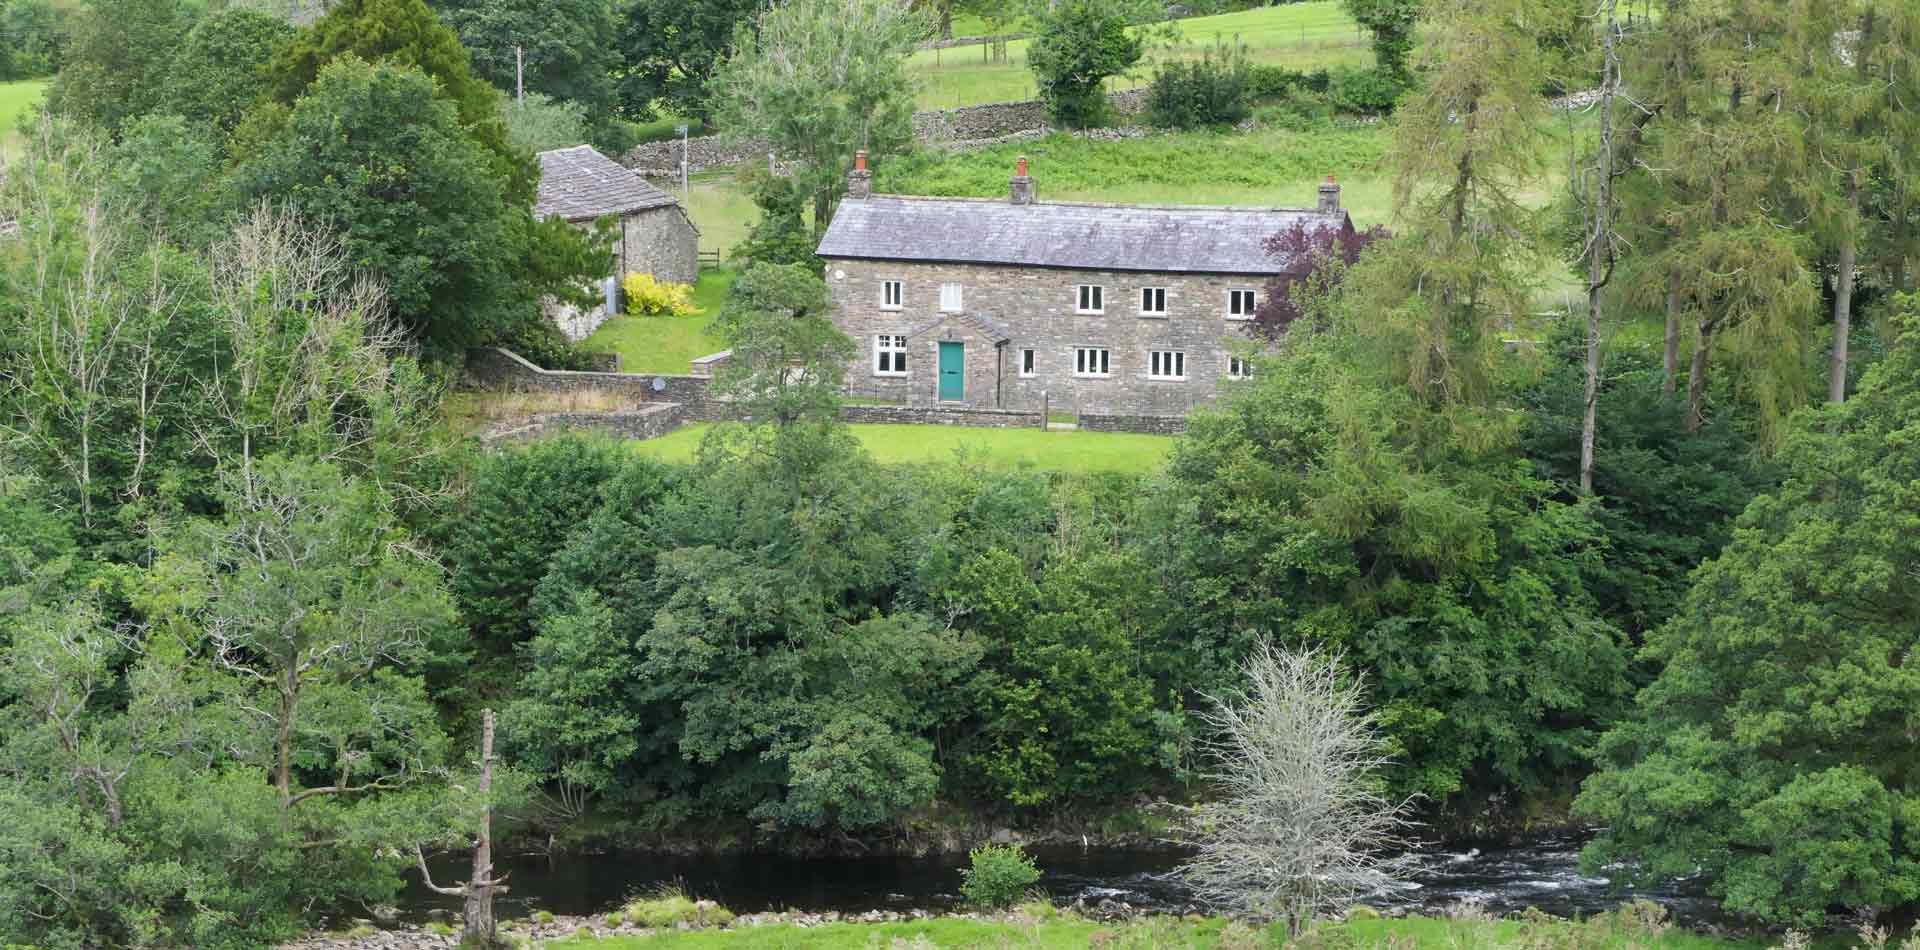 Along with the 12 acres of lush pasture land on the grounds, there are many, many walks and superb cycle routes. It's just 10 miles to the Lake District, and the Yorkshire Dales are literally on your doorstep, for even more choices.